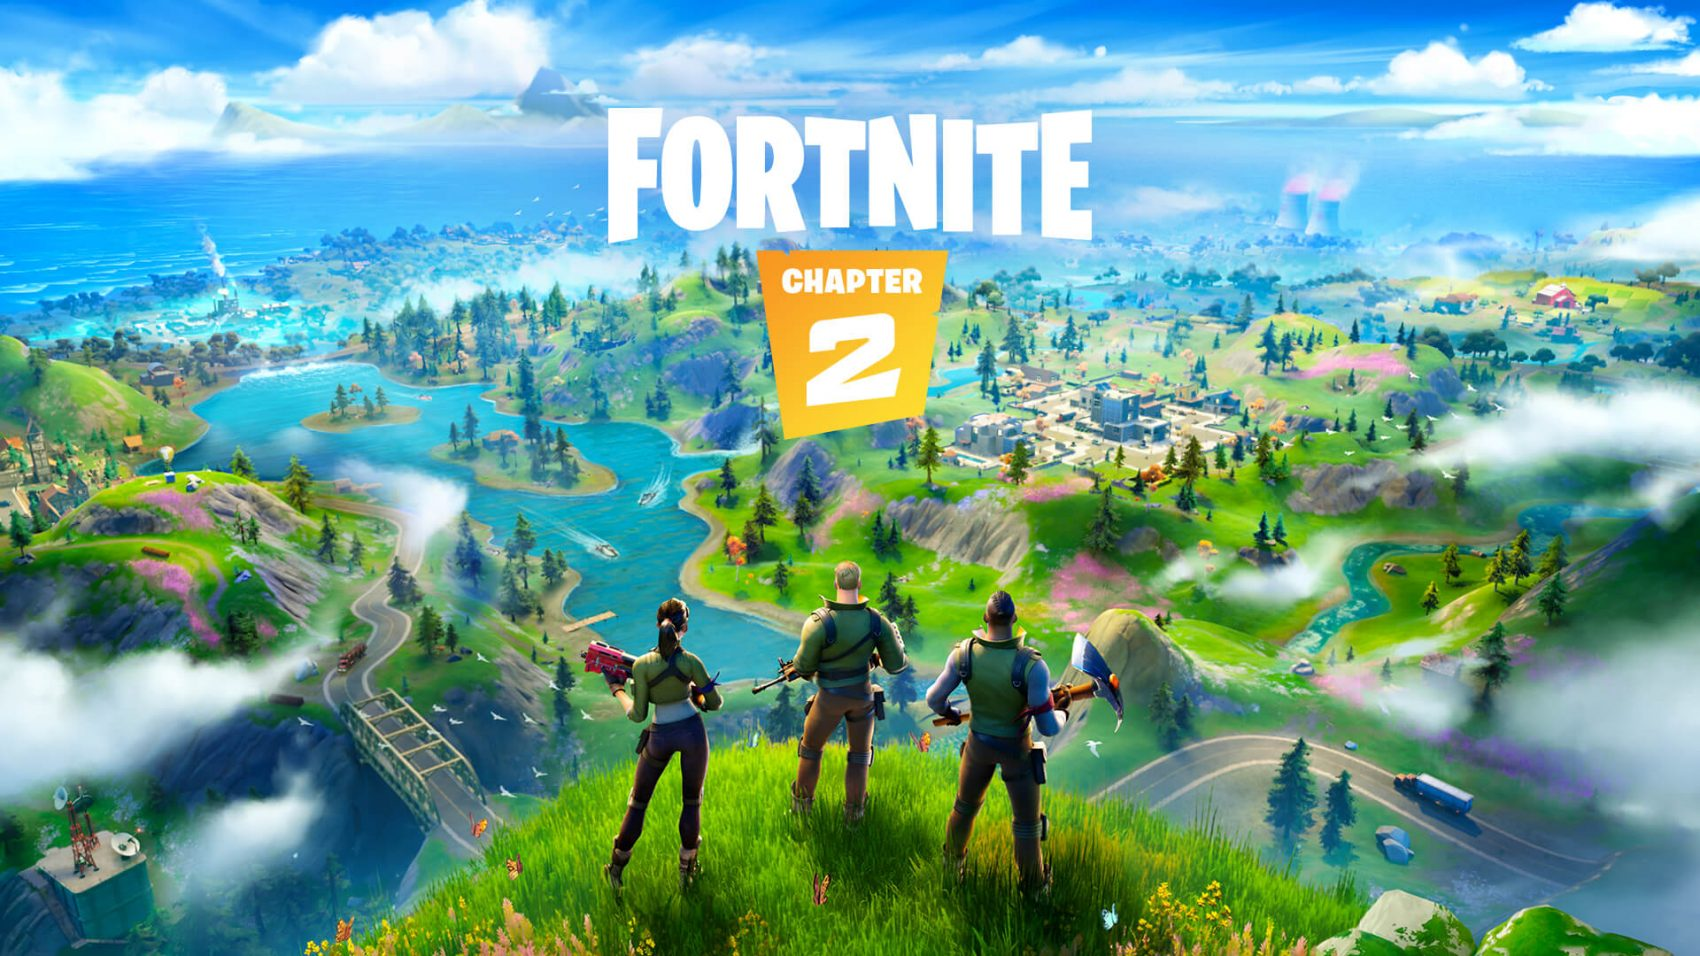 Fortnite Chapter 2 – How to Stay Vigilant and Keep Your Kids Safe